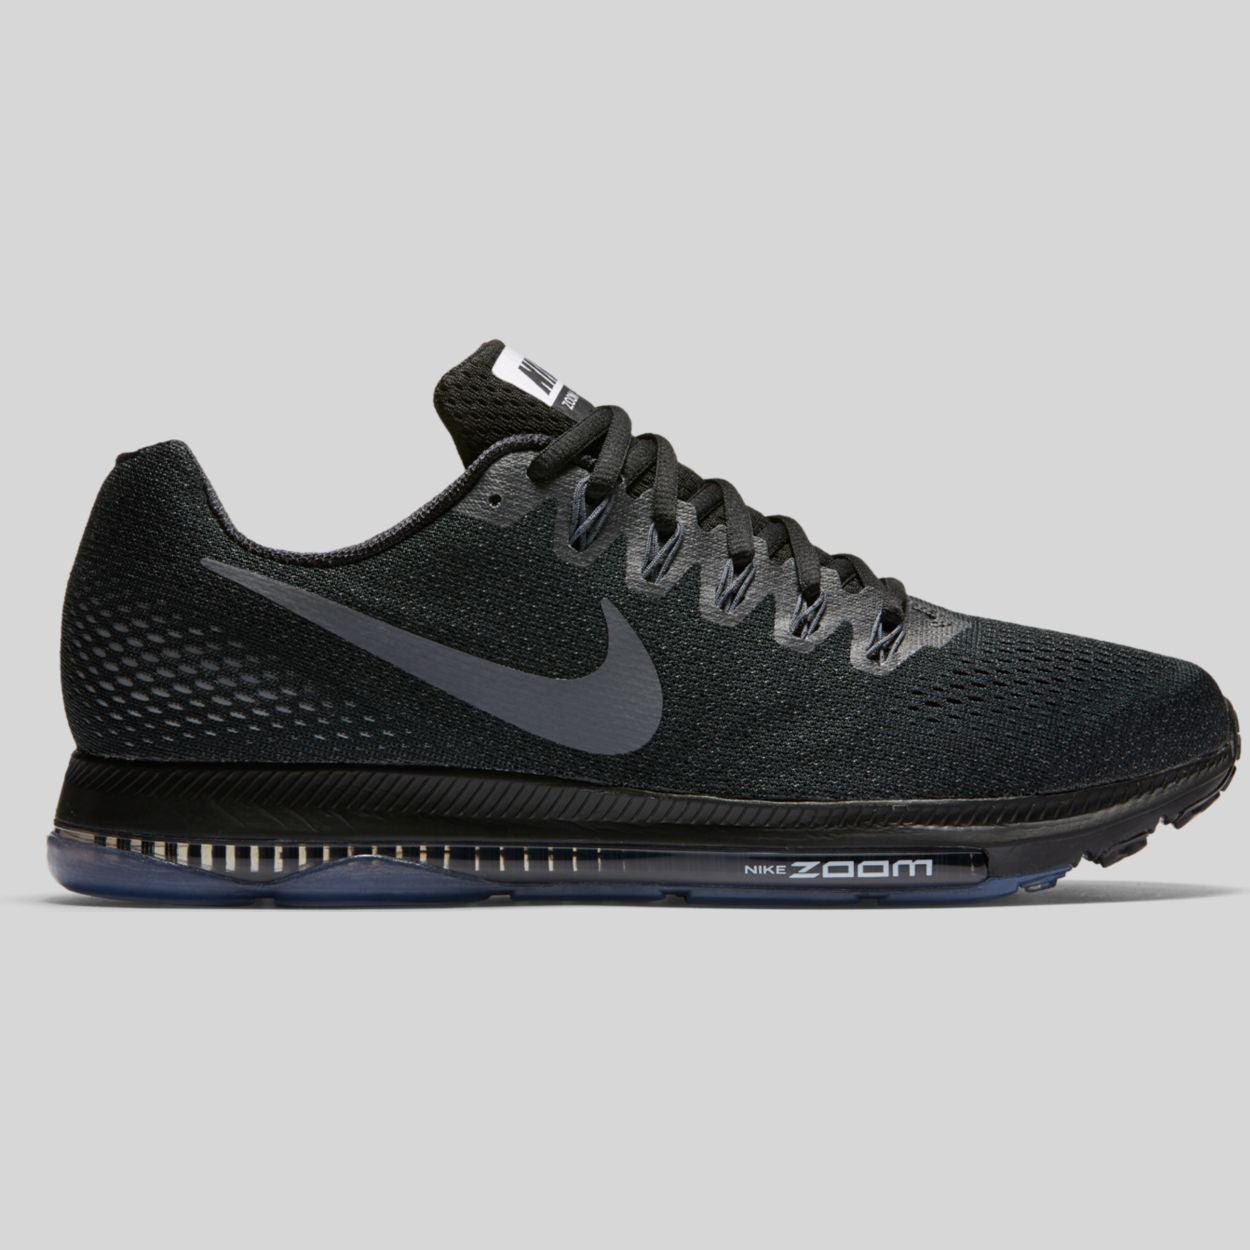 Nike Zoom All Out Low Black Dark Grey Anthracite White